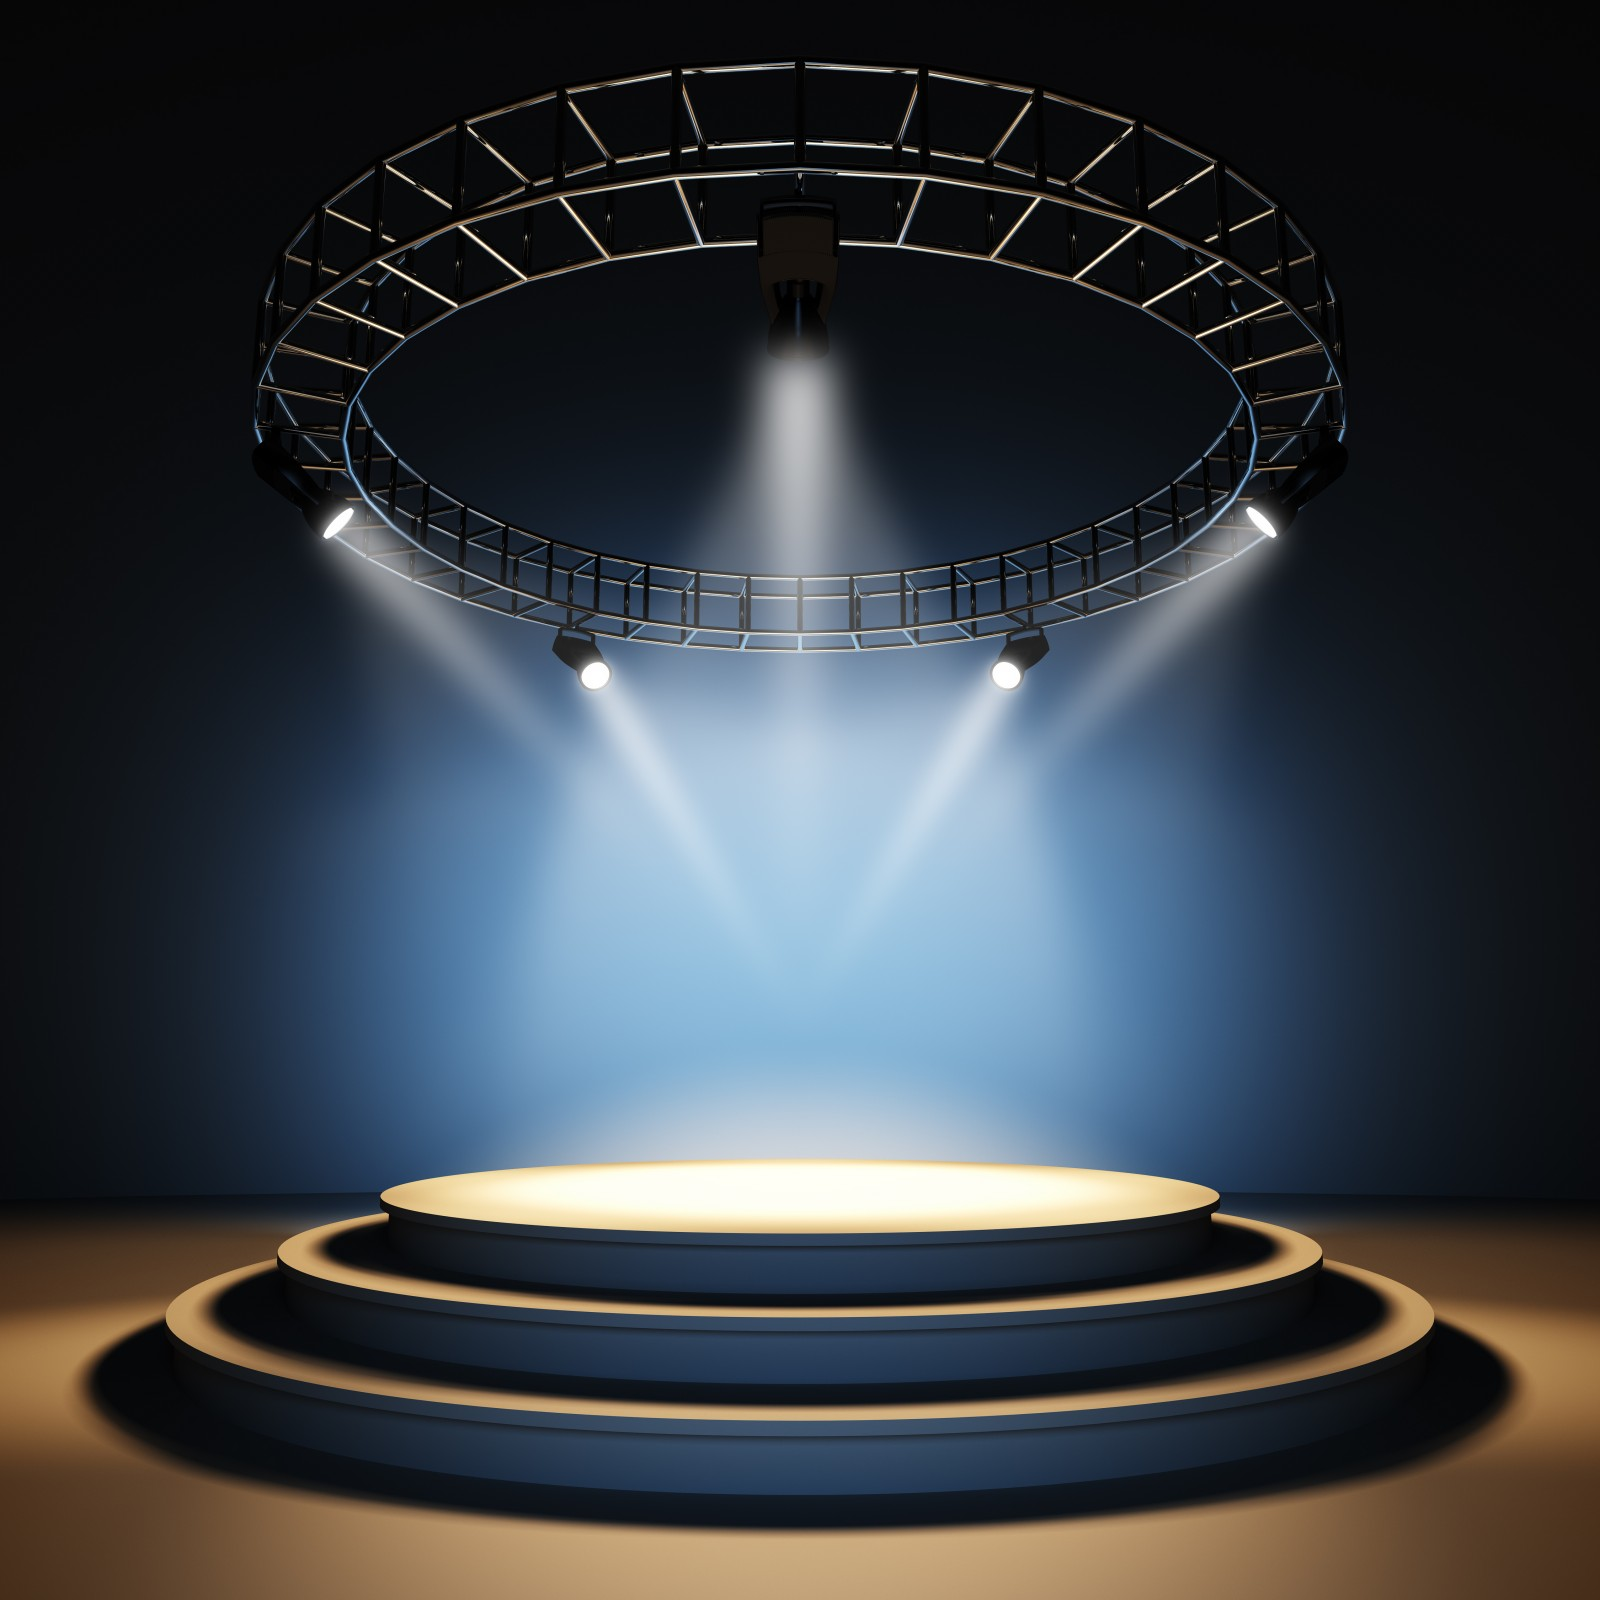 Empty Concert Stage with Lights